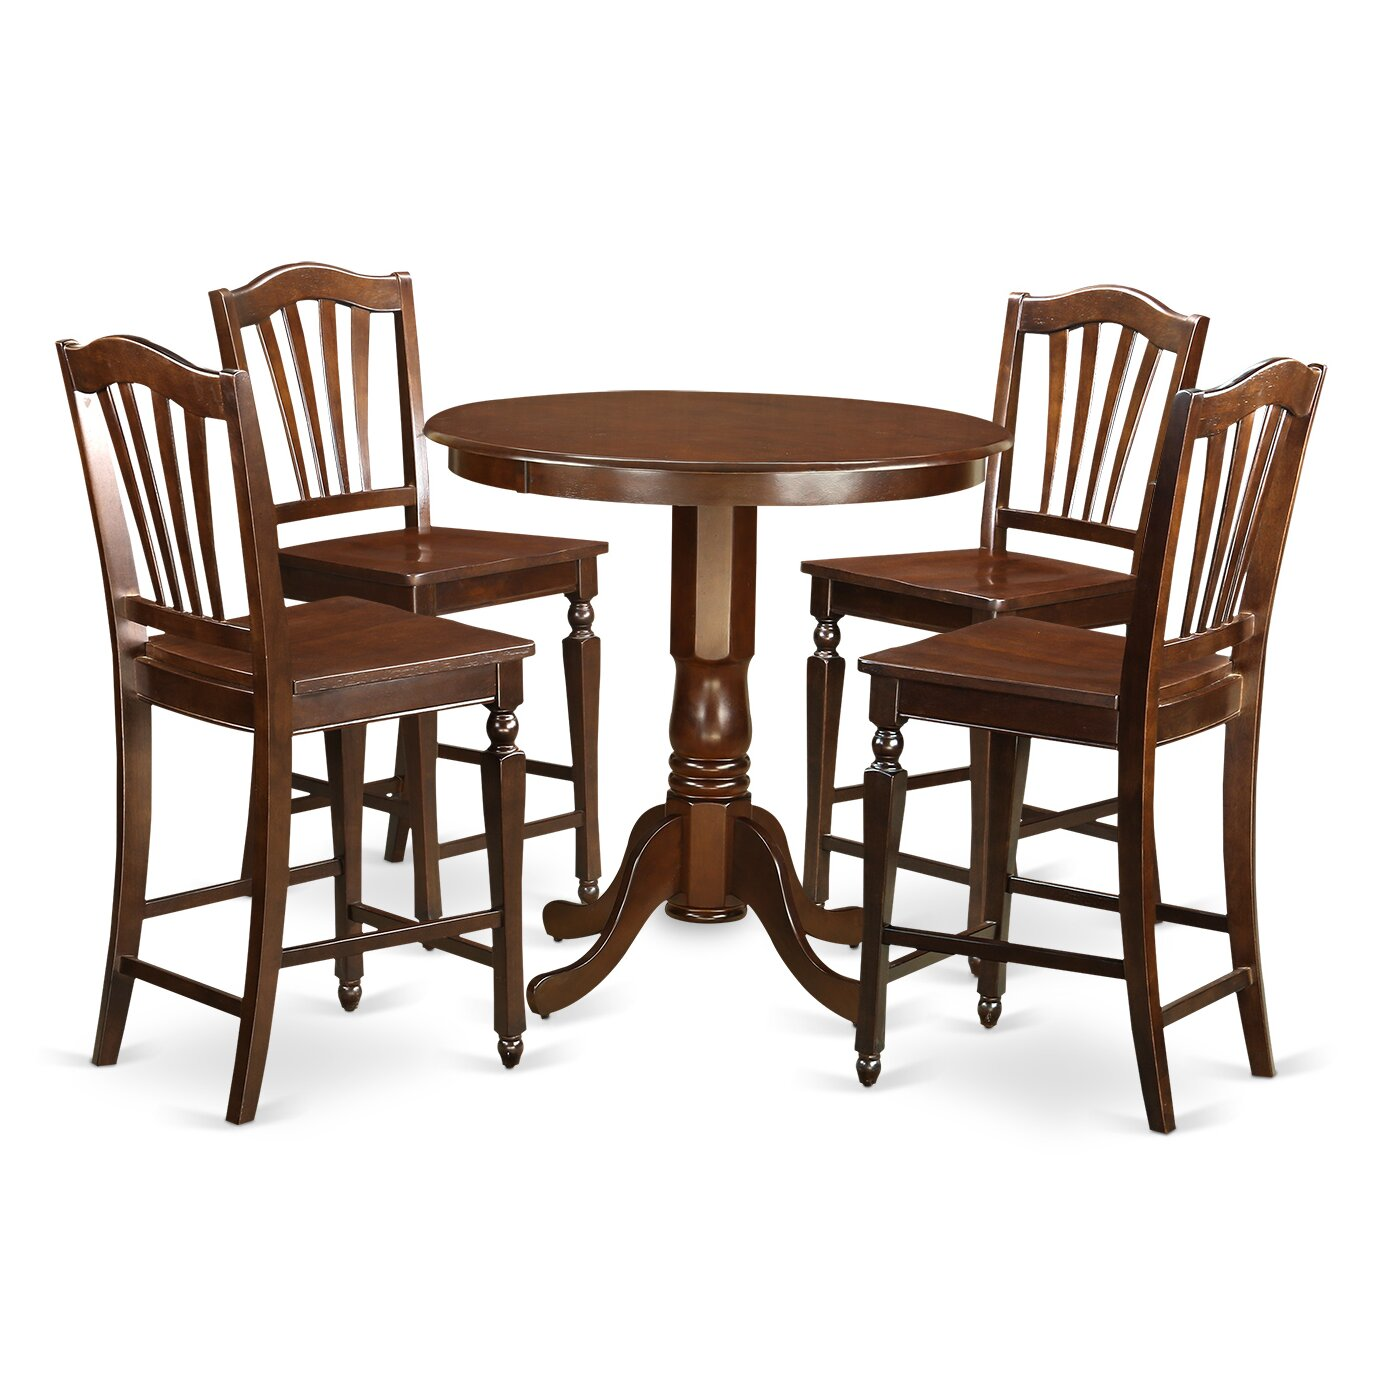 East west jackson 5 piece counter height pub table set for High table and chairs dining set